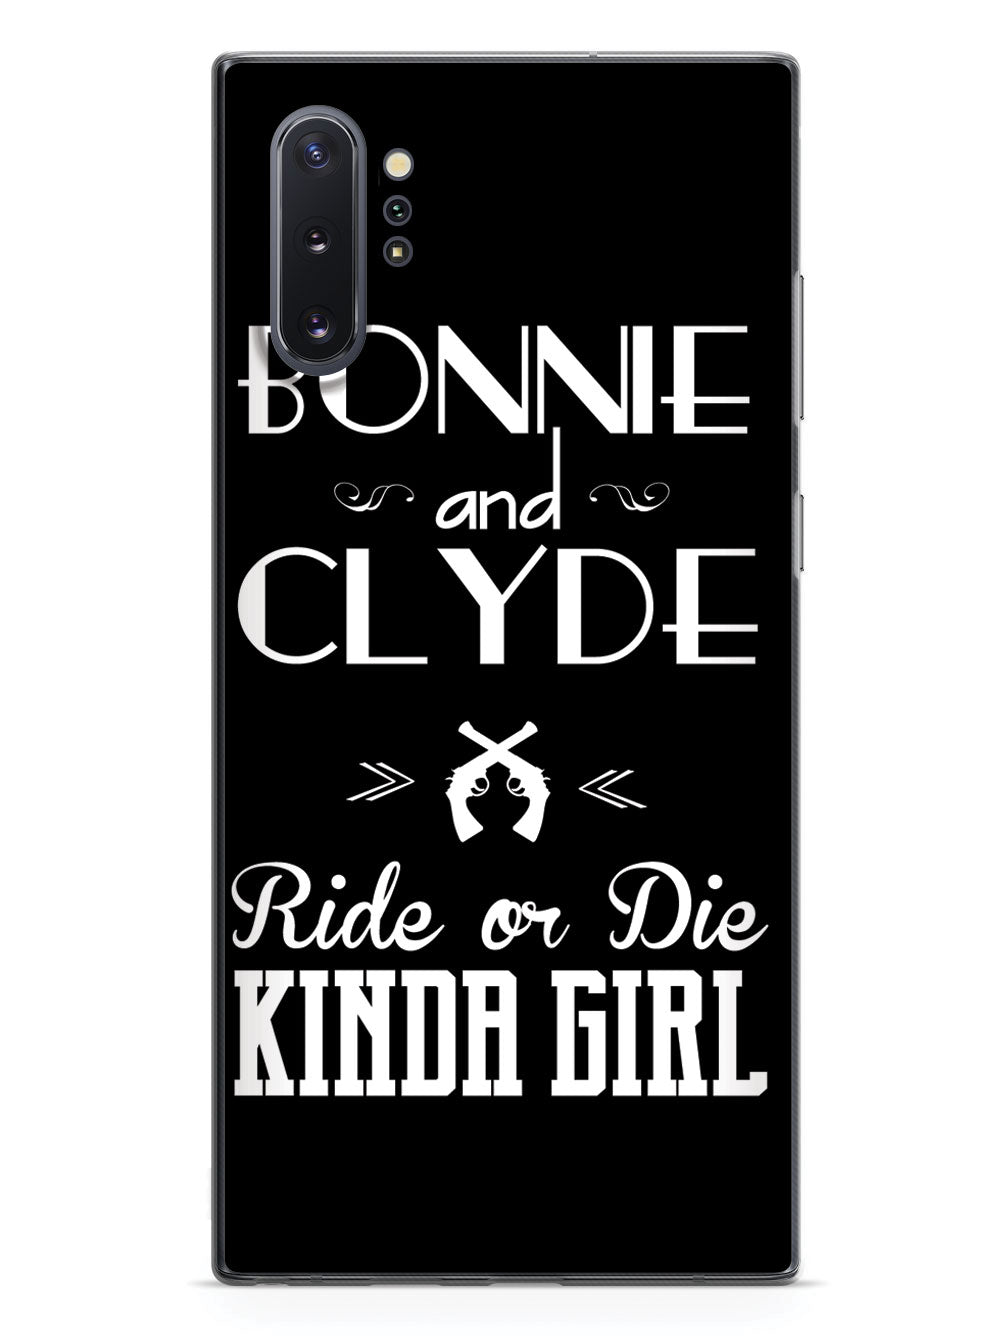 Bonnie & Clyde - Ride or Die Kinda Girl Case